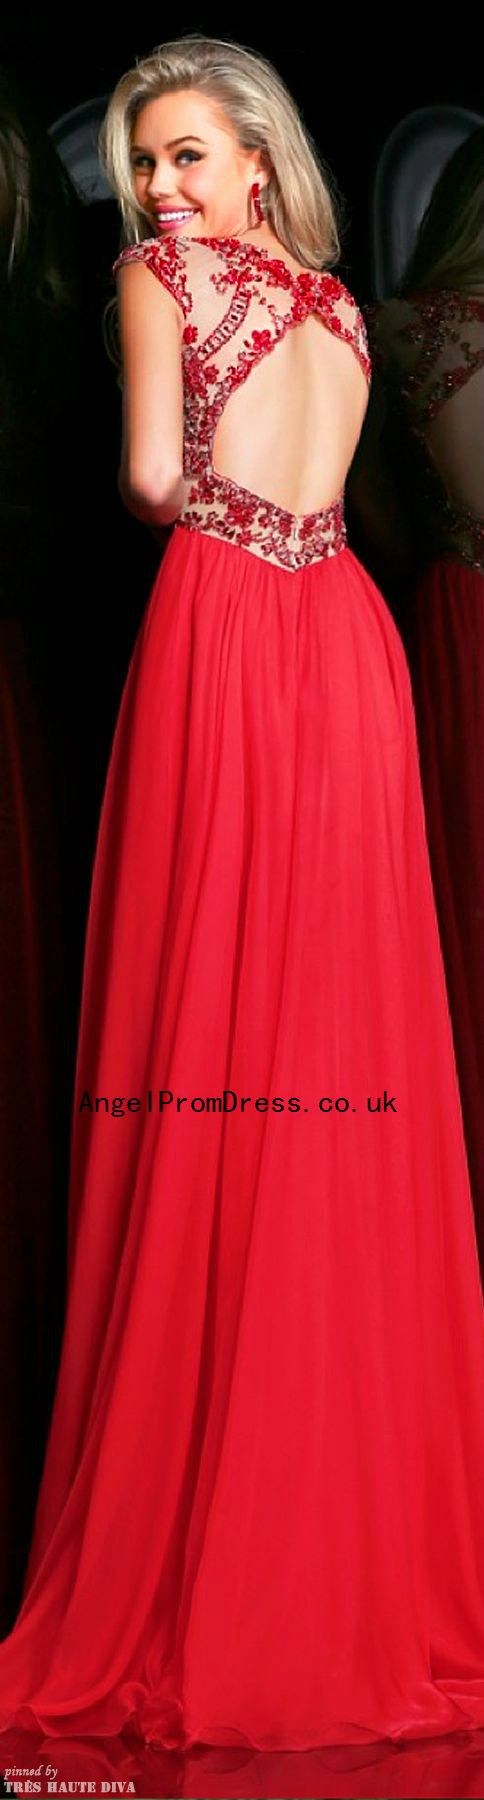 Love this dresss #prom